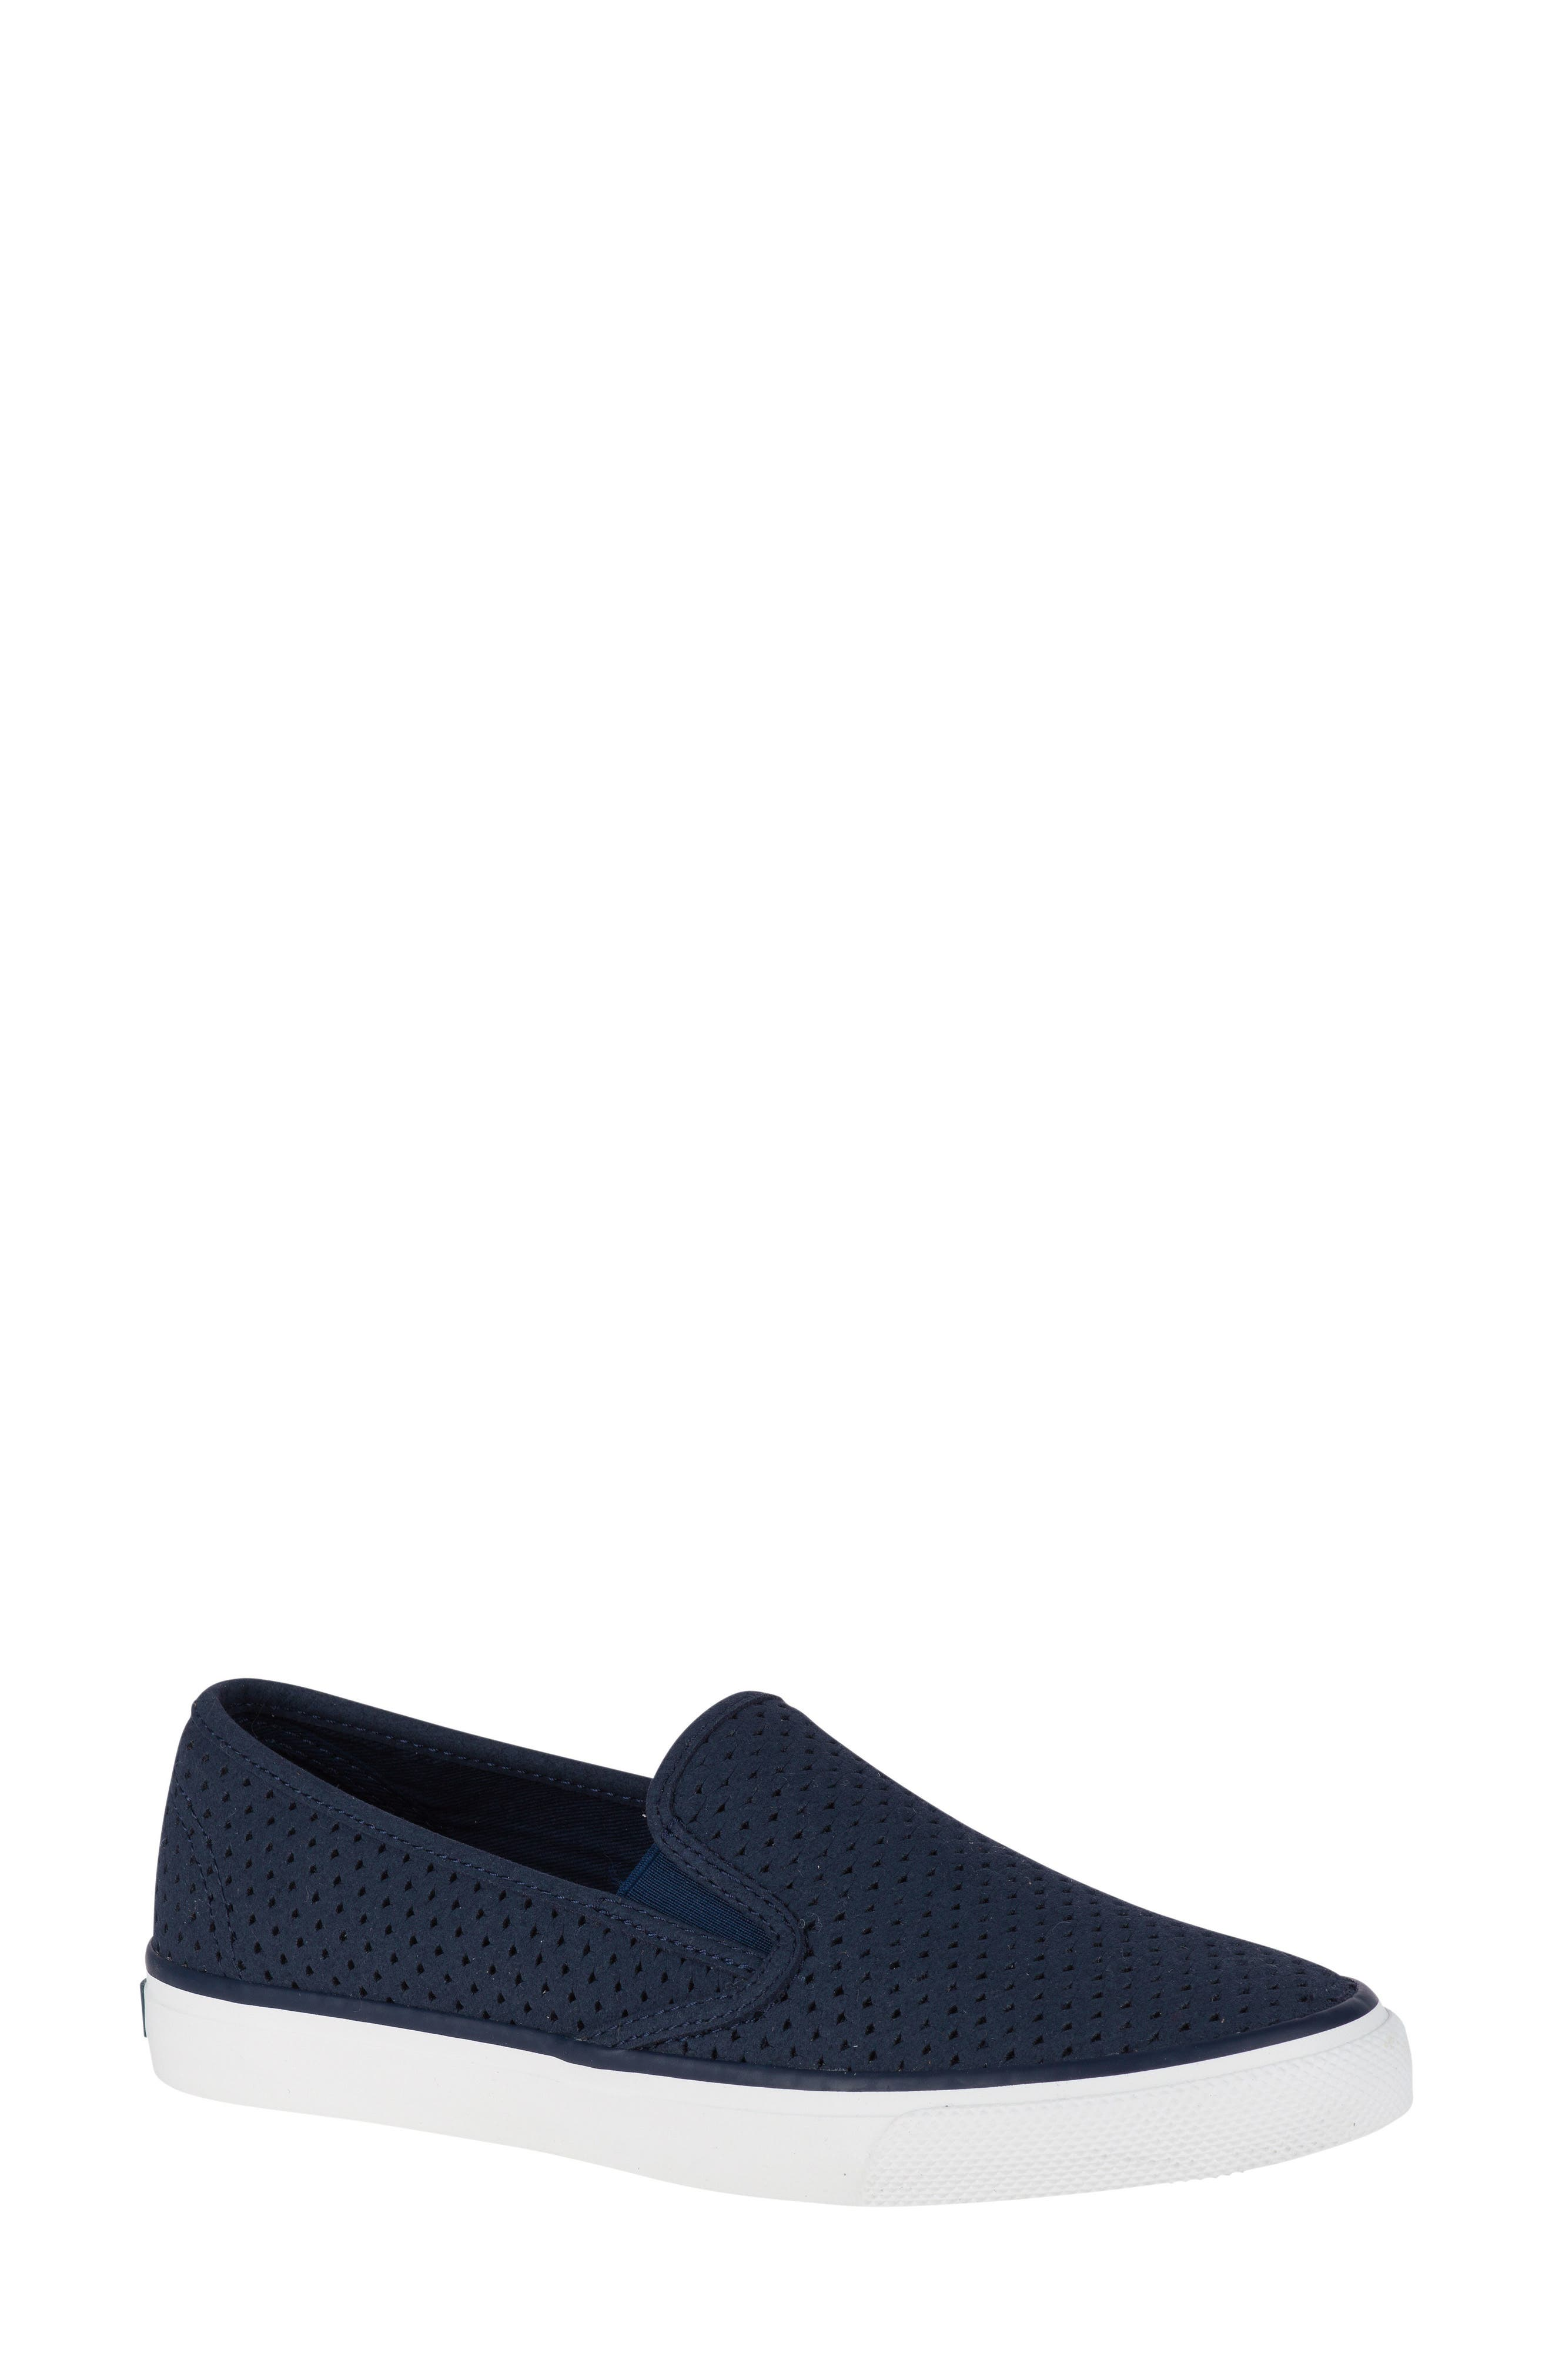 'Seaside' Perforated Slip-On Sneaker,                             Main thumbnail 9, color,